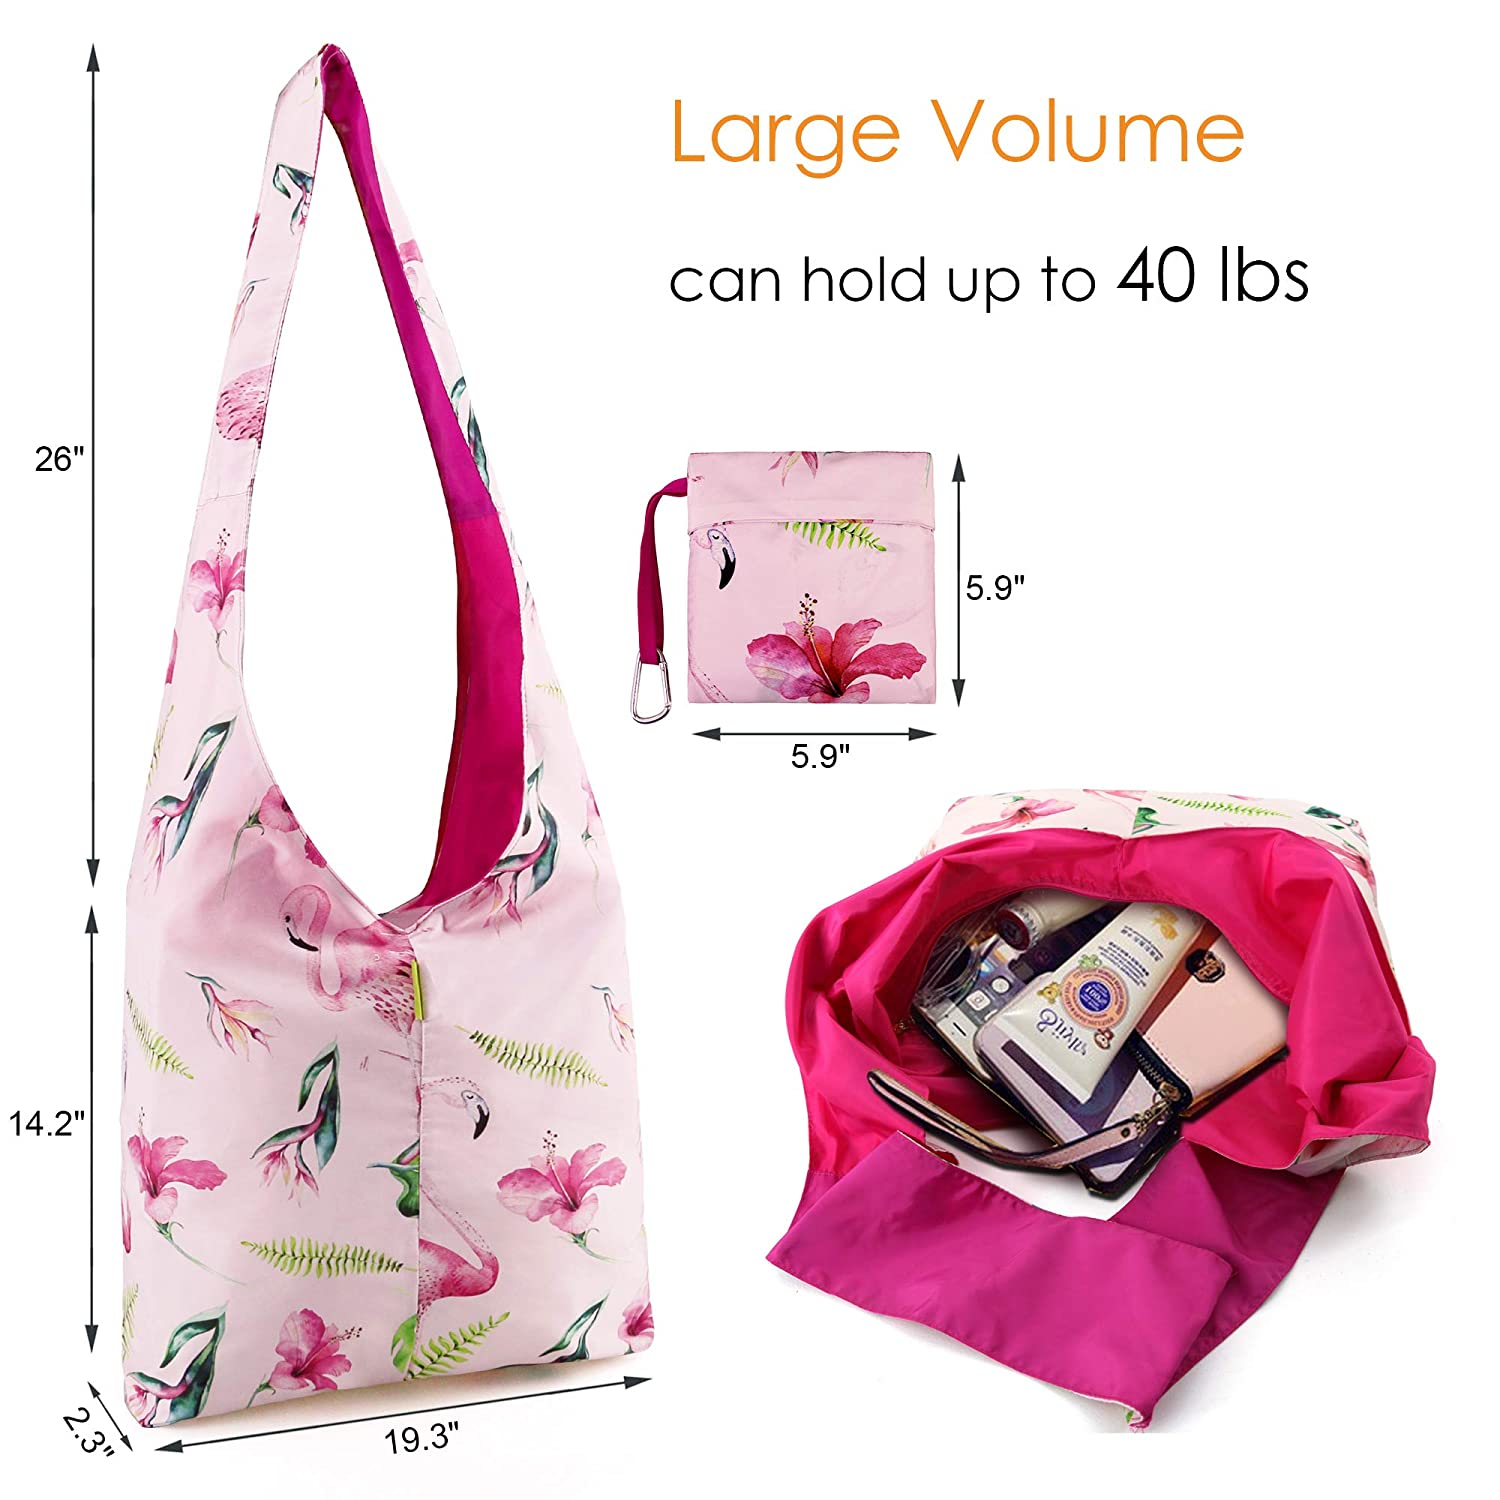 Messenger-Bag-Crossbody Bag for Men Women Travel Foldable Nylon Sling Bag  with Zipper Cross Body Bag with Pink Flamingo Pattern Fashion Bag for Gifts  Tote ... df97da4fcd